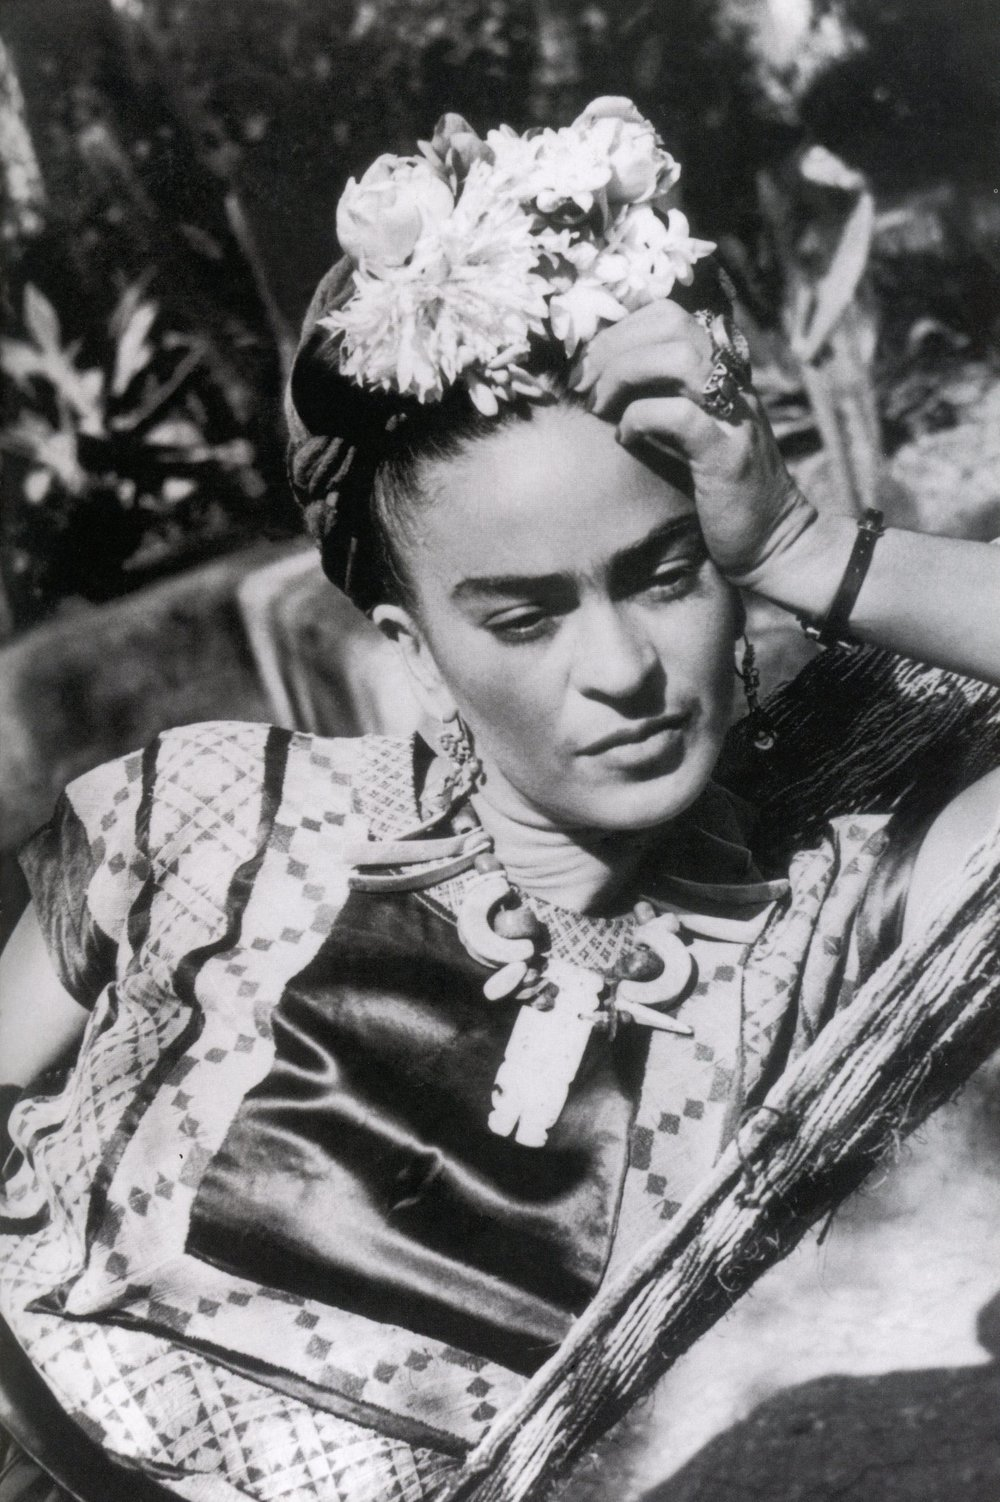 "Frida Kahlo, one of the GREATS ™ .  She was a renowned surrealist, Mexican painter who inspired many with her art work.  She once said, ""Feet, what do I need you for when I have wings to fly?"" affirming her own greatness."